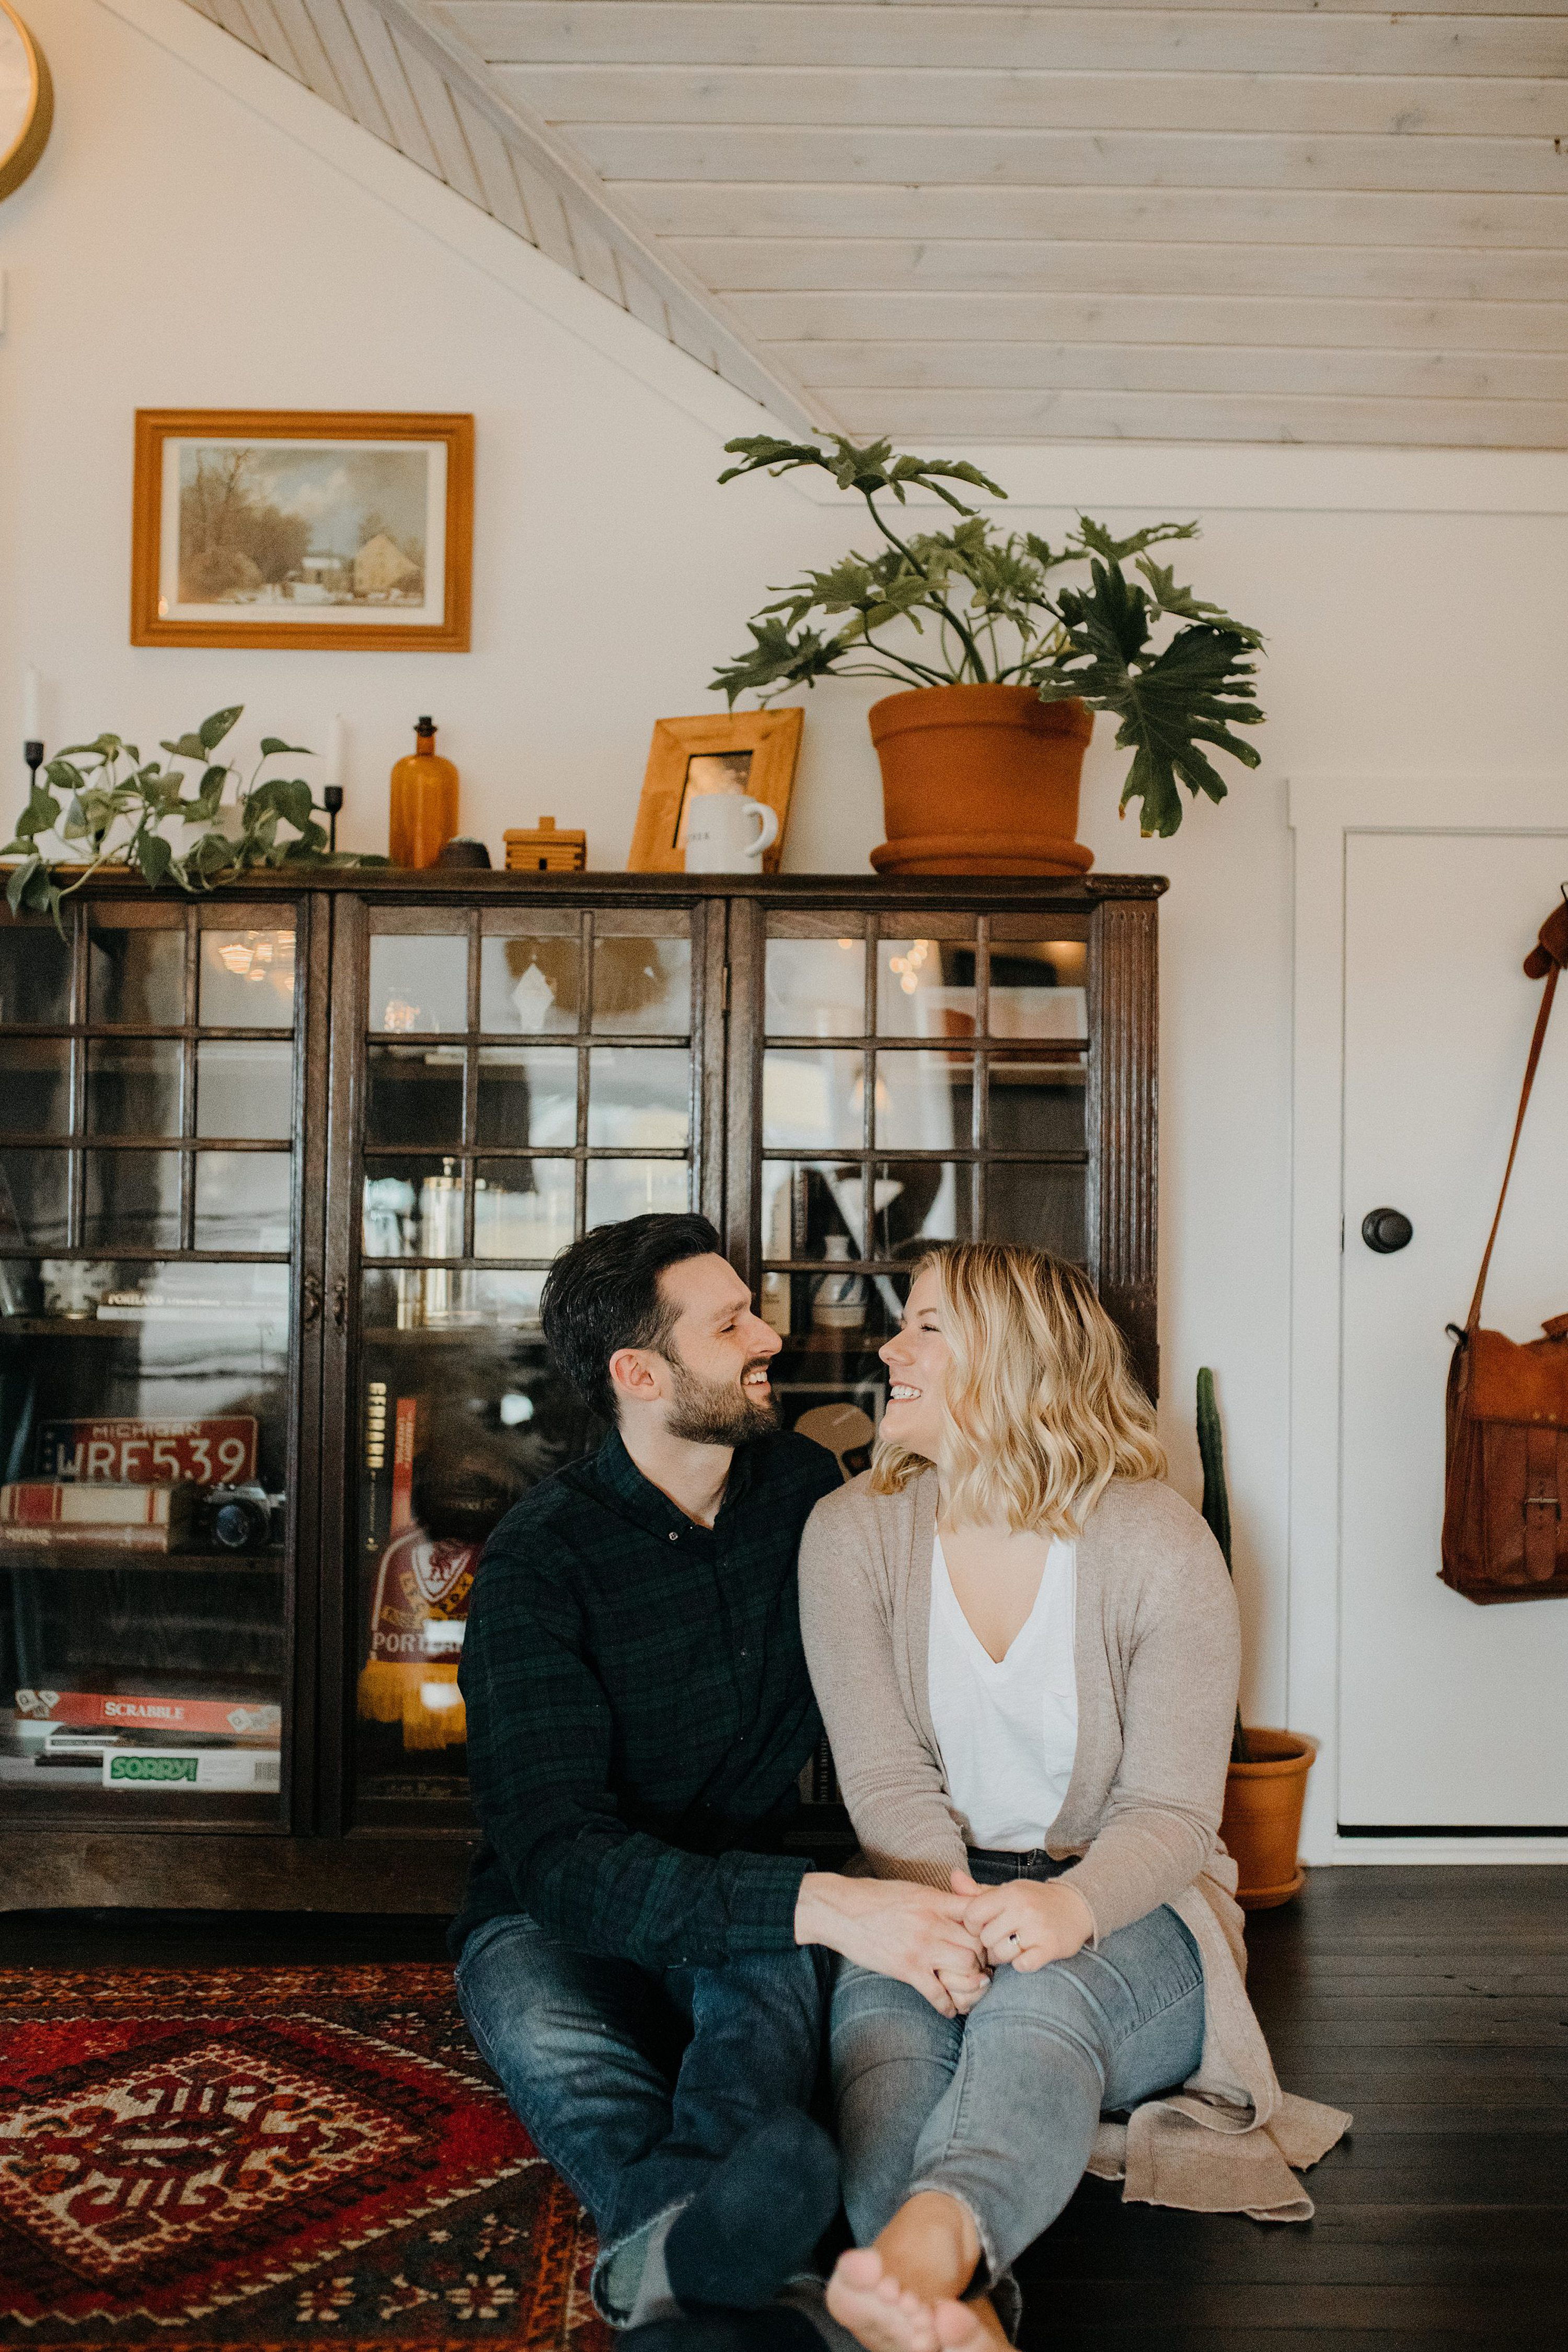 cute couples photos,in home engagement session,candid engagement session,winter engagement session,living room engagement session,engagement photos with dog,couples photos with dog